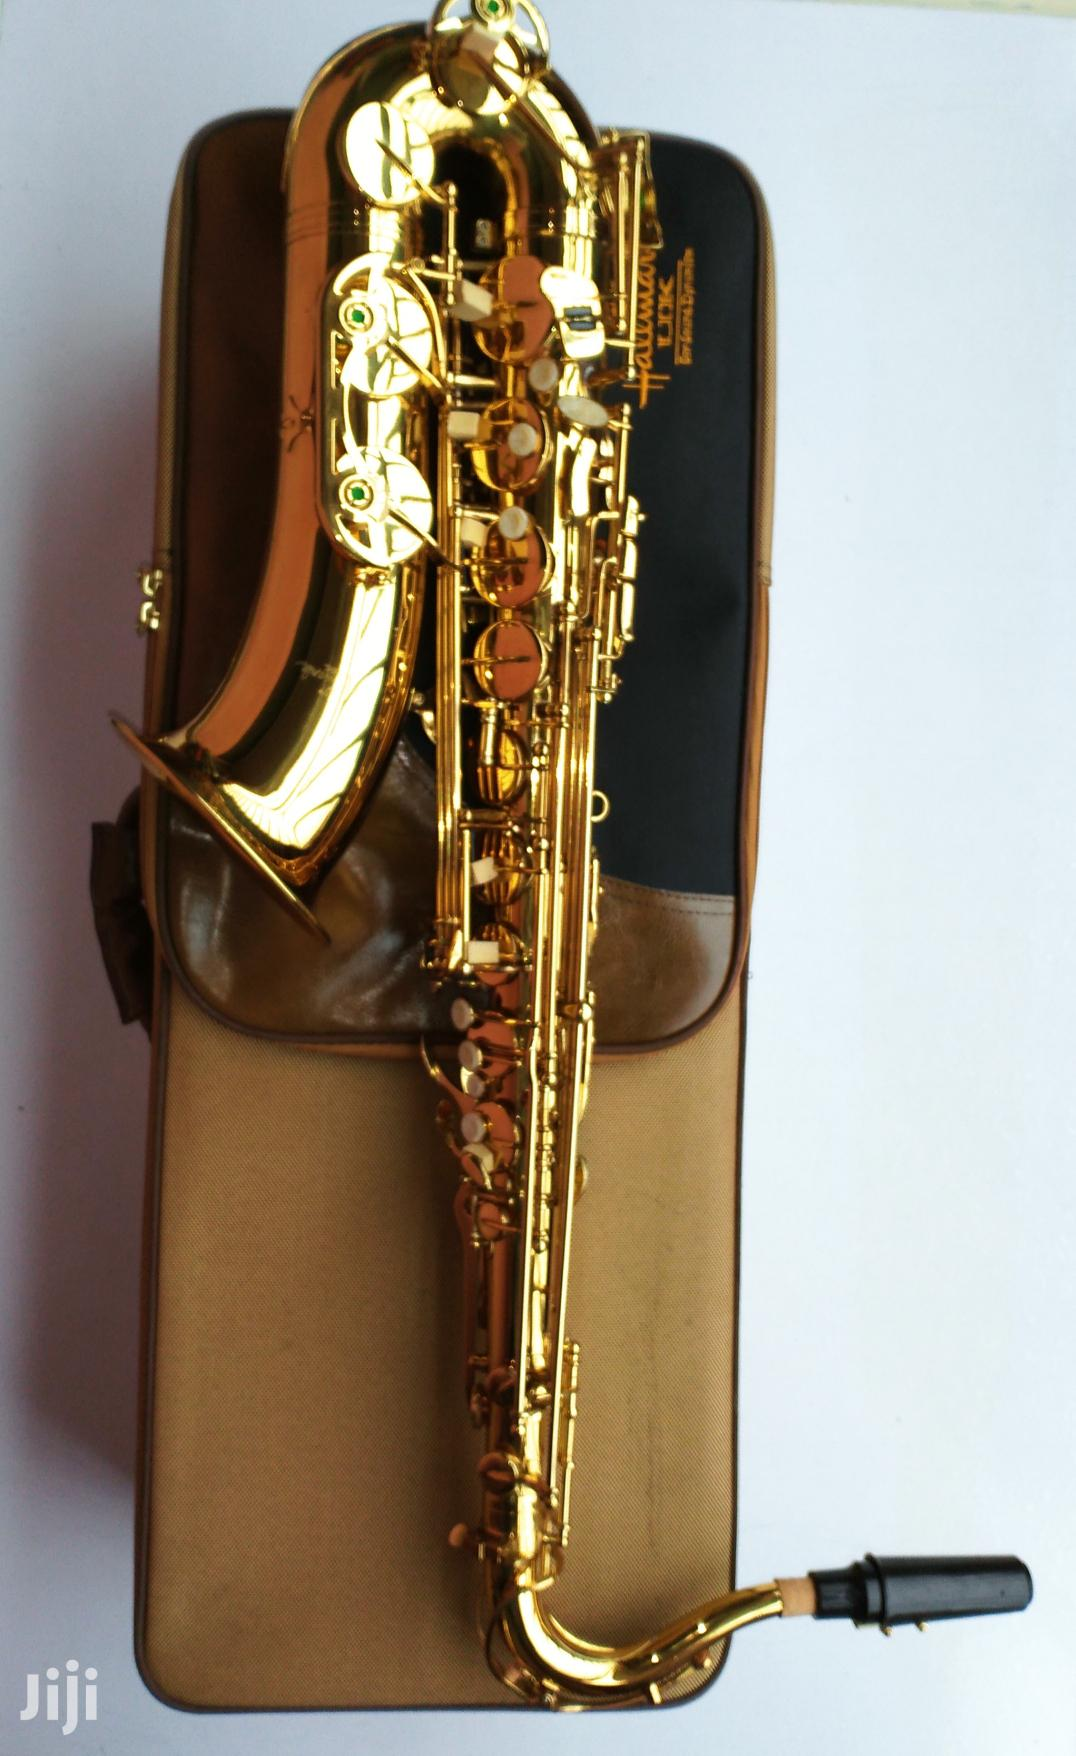 Hallmark-uk High Quality Tenor Sax | Musical Instruments & Gear for sale in Lagos State, Nigeria